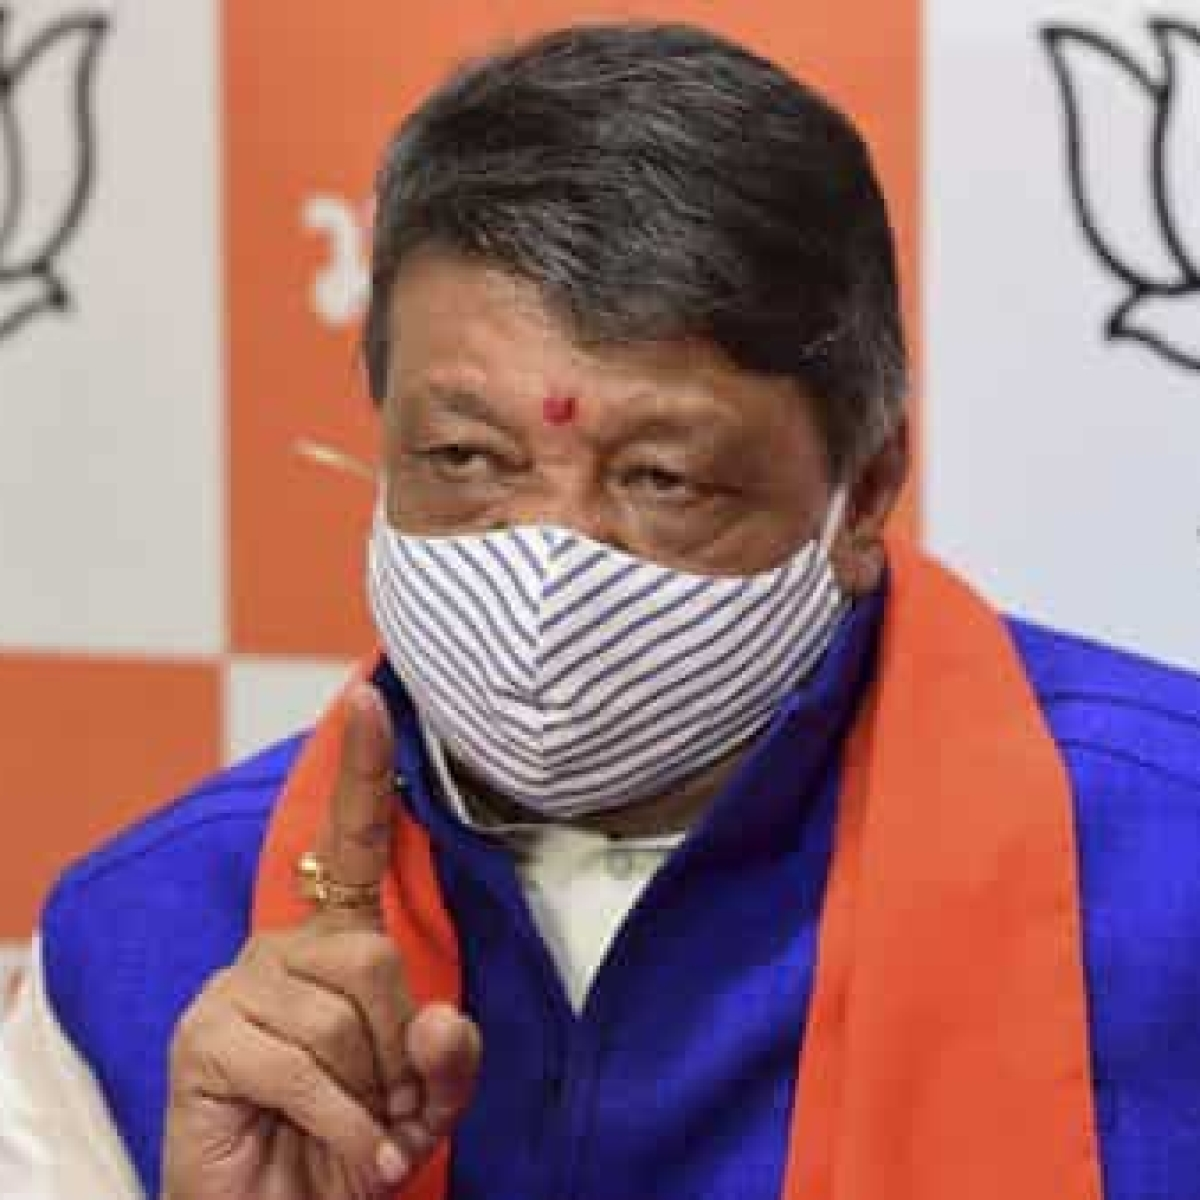 BJP's Kailash Vijayvargiya slams Maharashtra govt for denying use of state aircraft to BS Koshyari